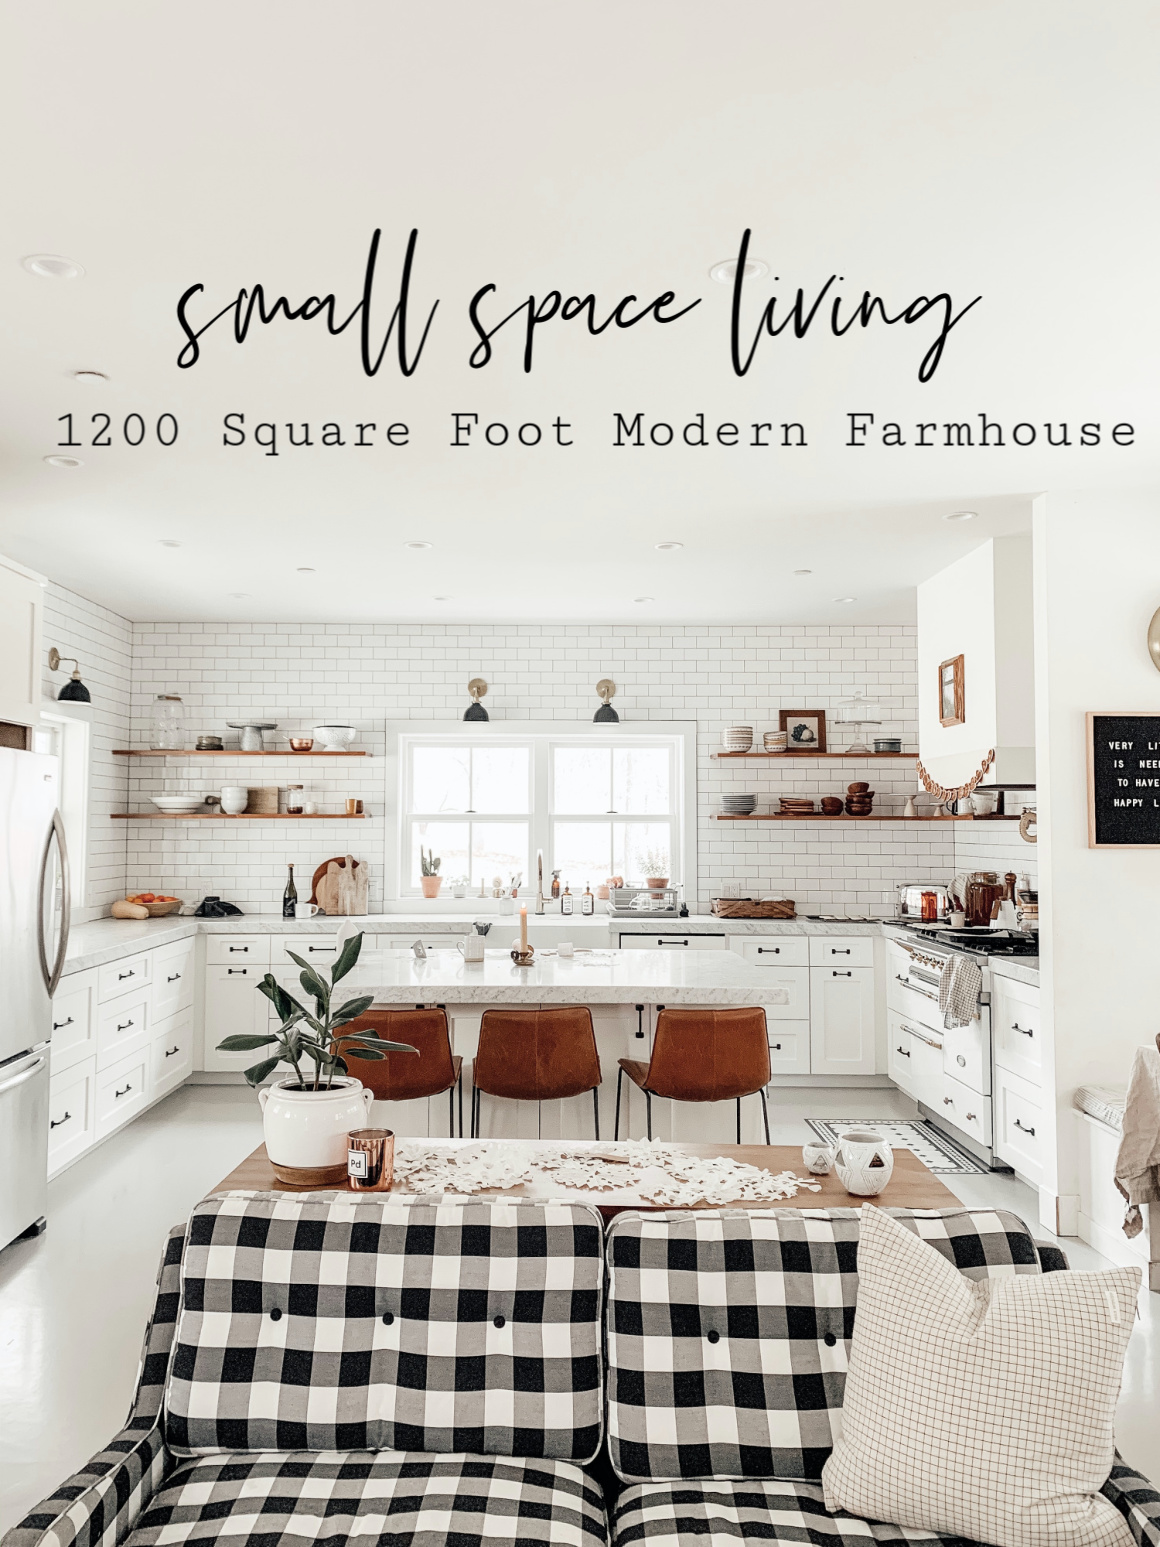 Small Space Living Series- 1200 Square Foot Modern Farmhouse